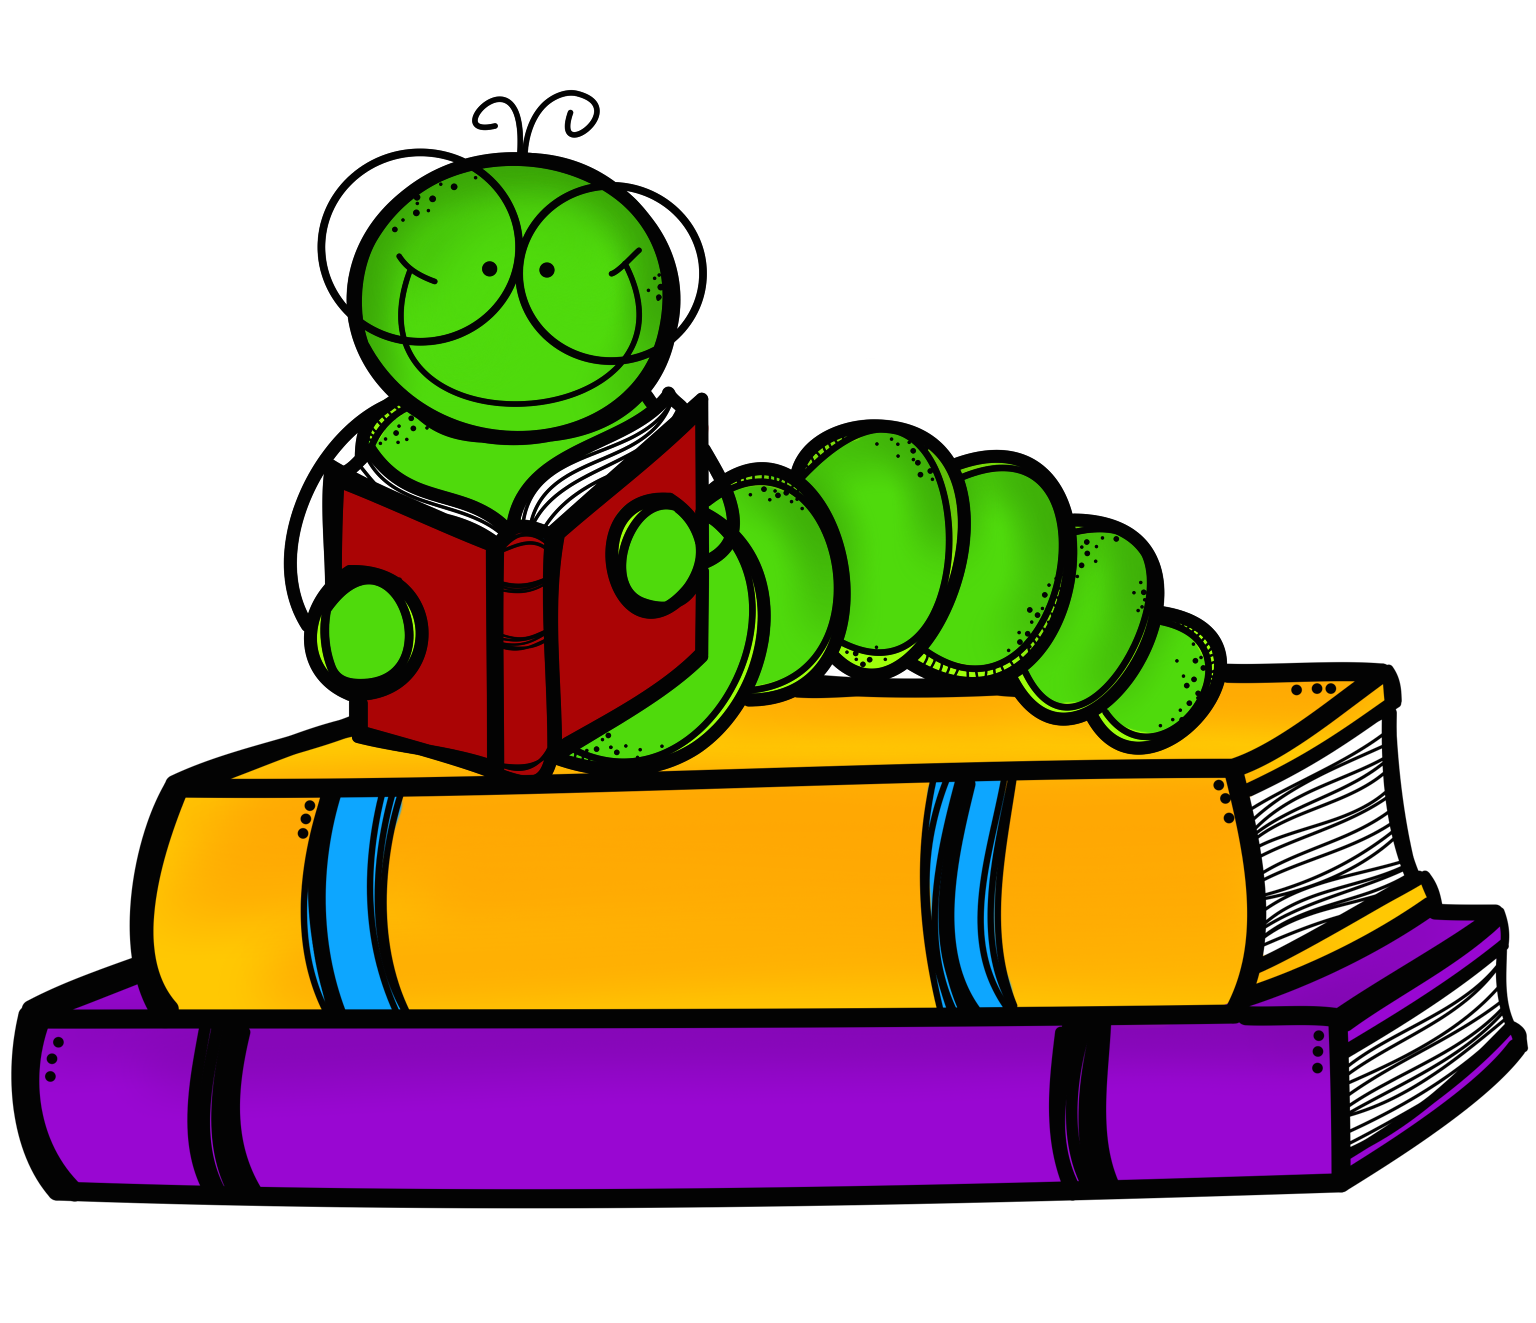 Bookworm clipart preschool book. Stack cliparts add cool